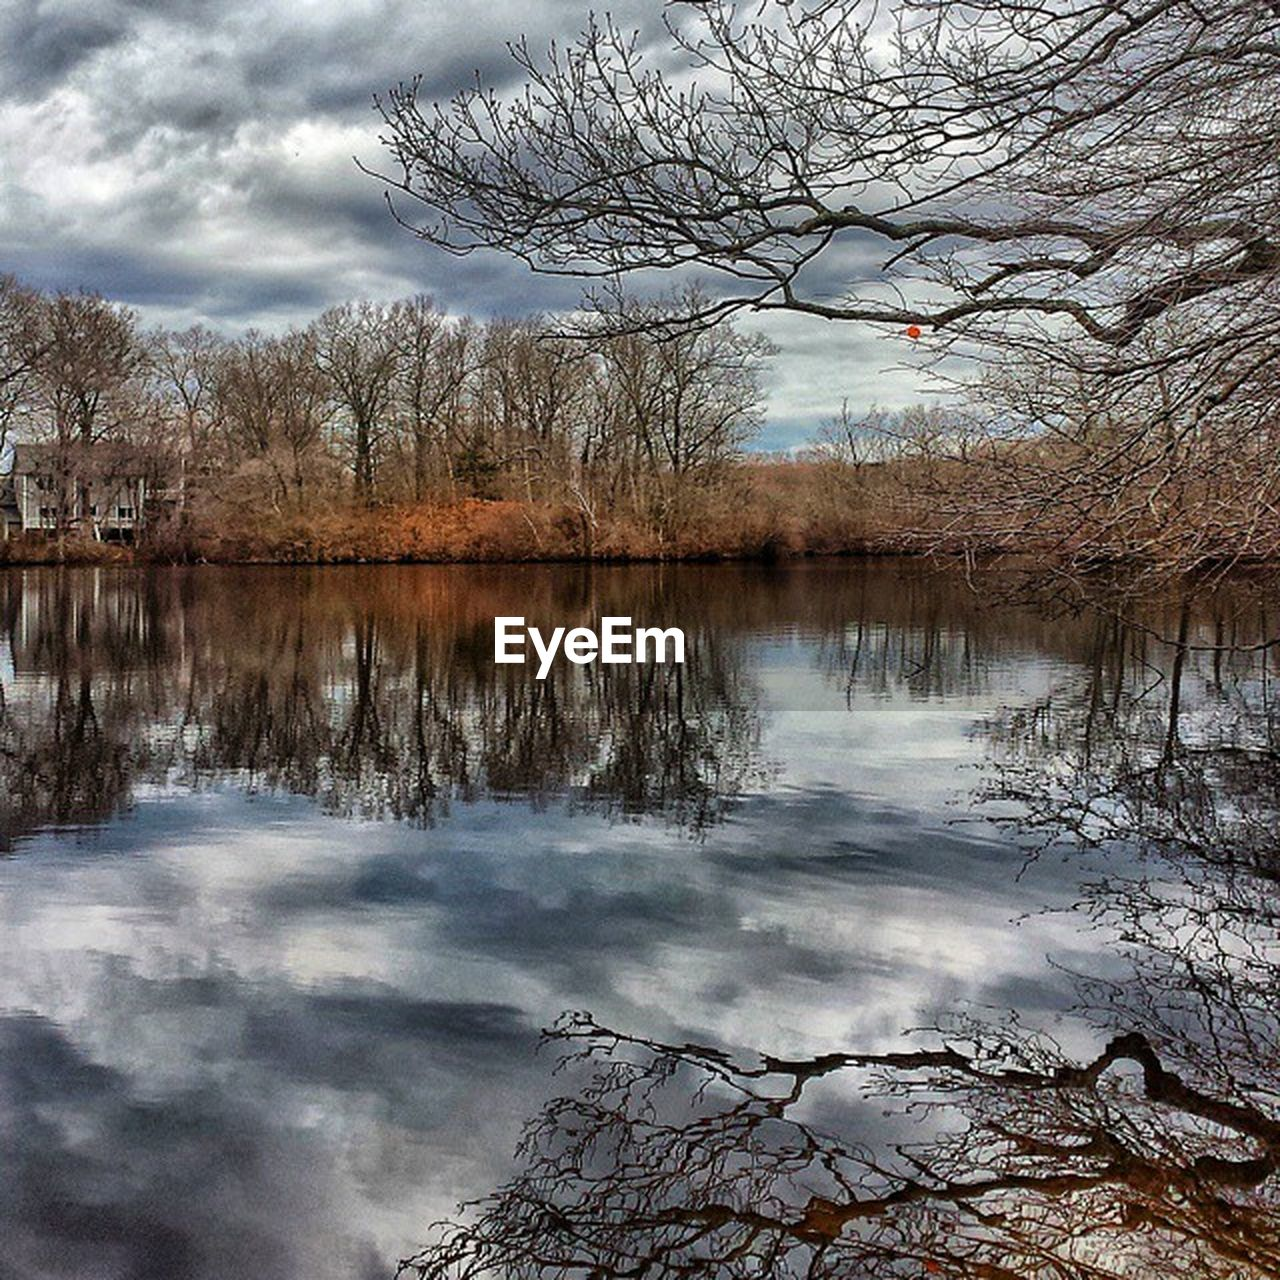 reflection, tree, lake, beauty in nature, nature, water, bare tree, tranquility, tranquil scene, sky, scenics, cloud - sky, outdoors, no people, landscape, day, branch